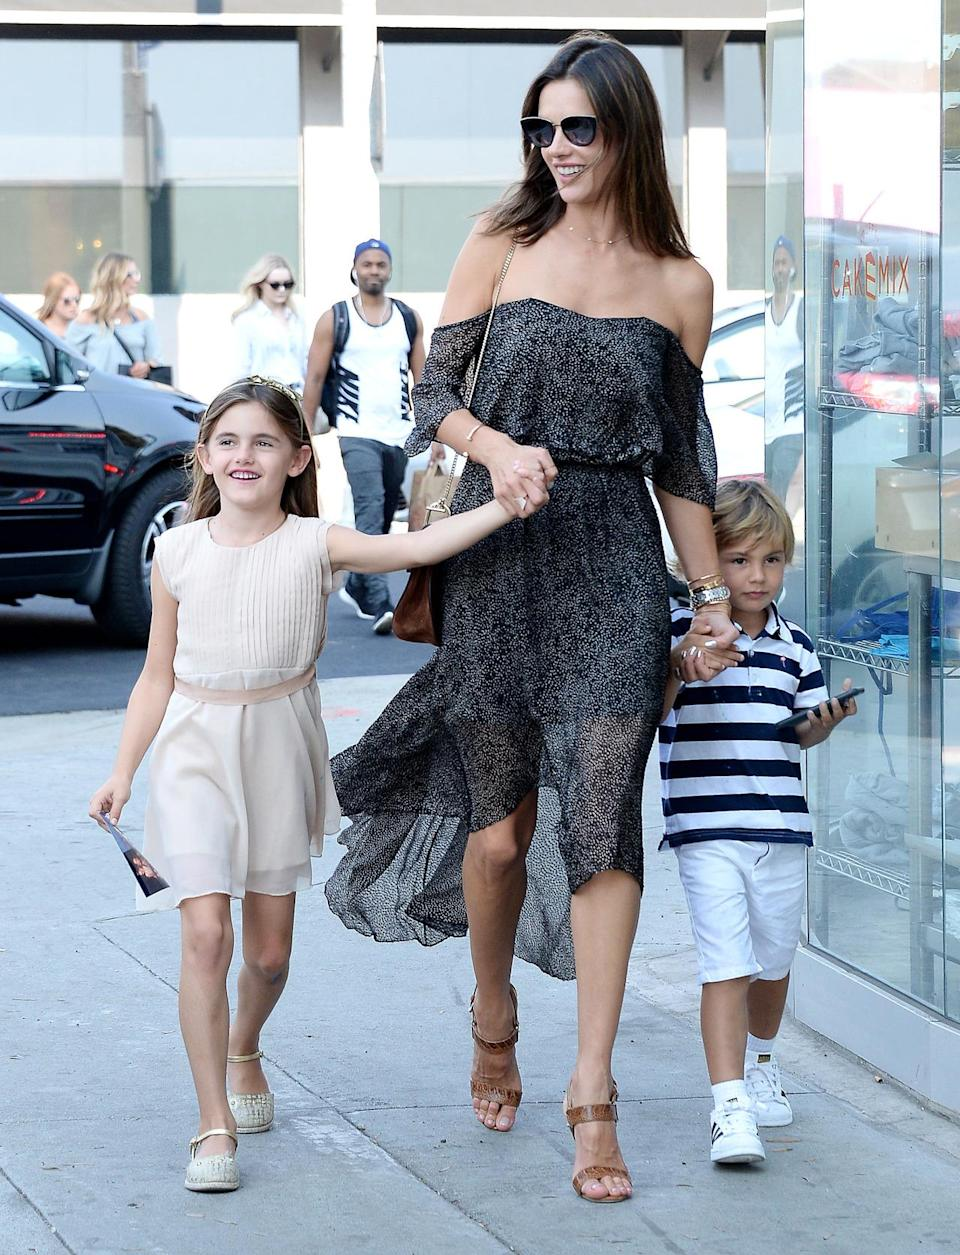 <p>The model/super mom looked ultra chic in an off-the-shoulder dress while taking her kids out to celebrate her daughter's birthday. <i>(Photo by Splash News)</i></p>